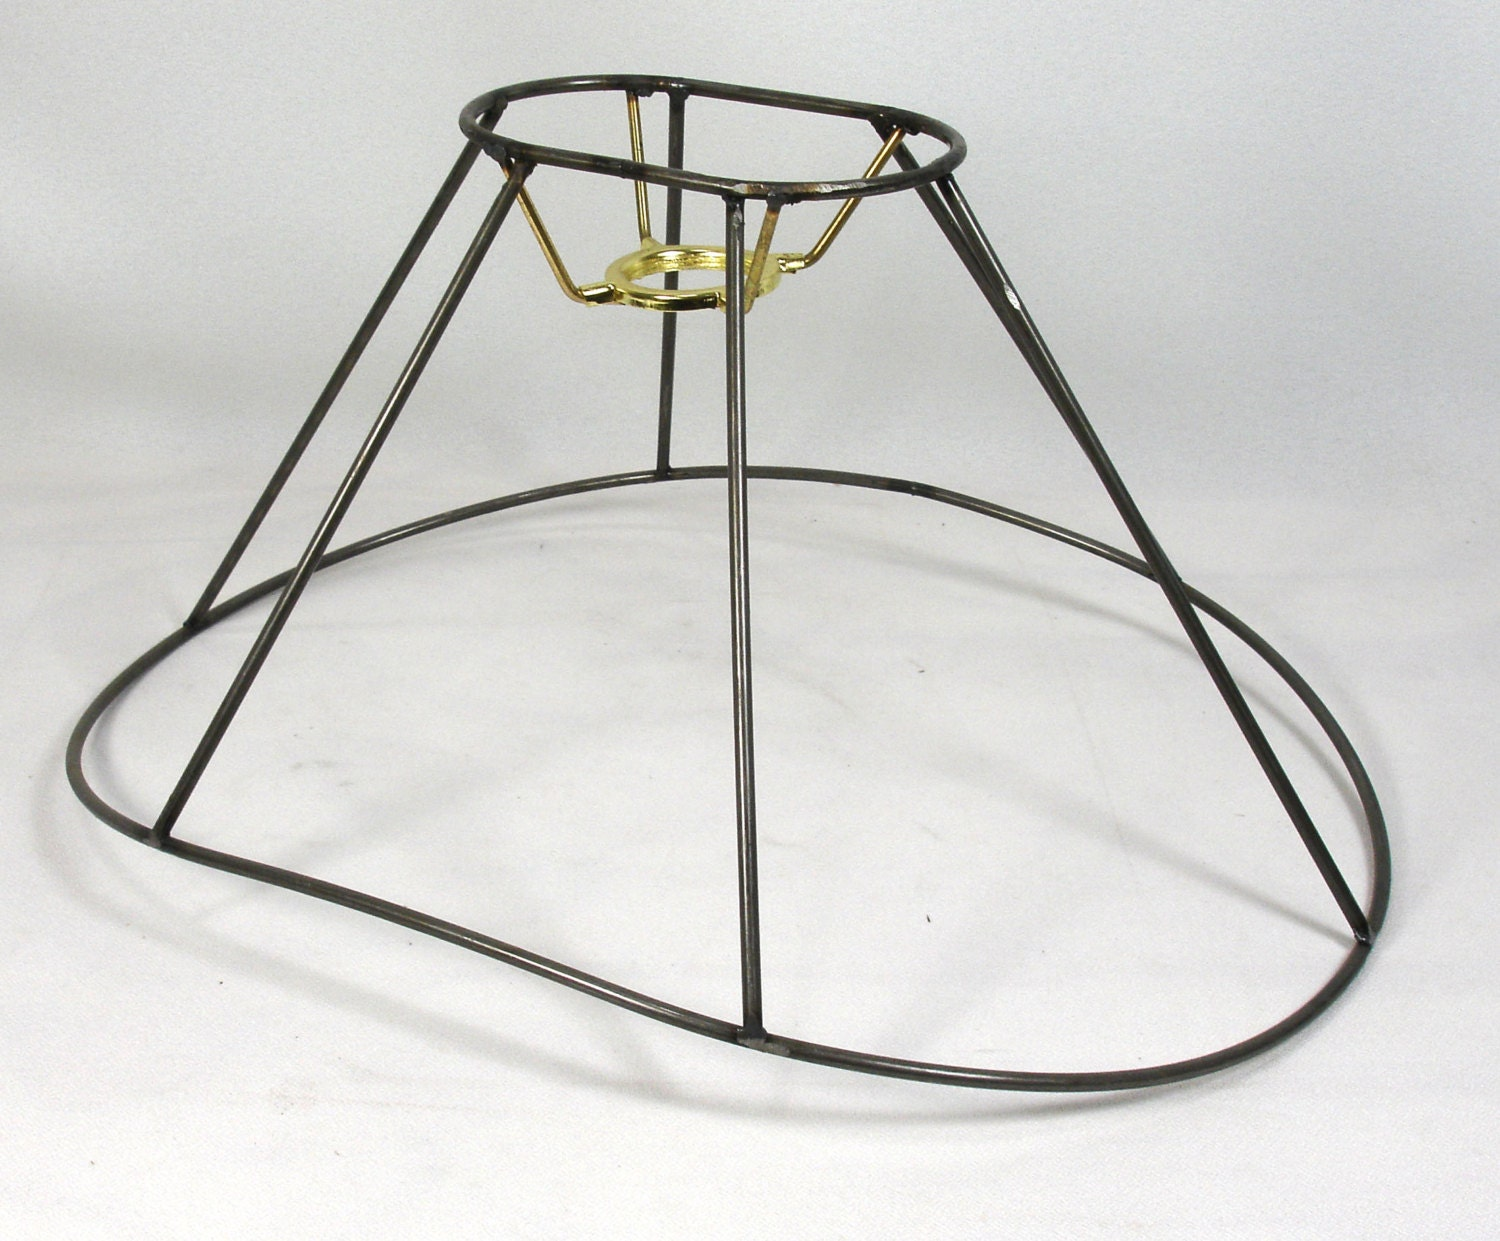 items similar to lamp shade frame bridge table wire oval. Black Bedroom Furniture Sets. Home Design Ideas